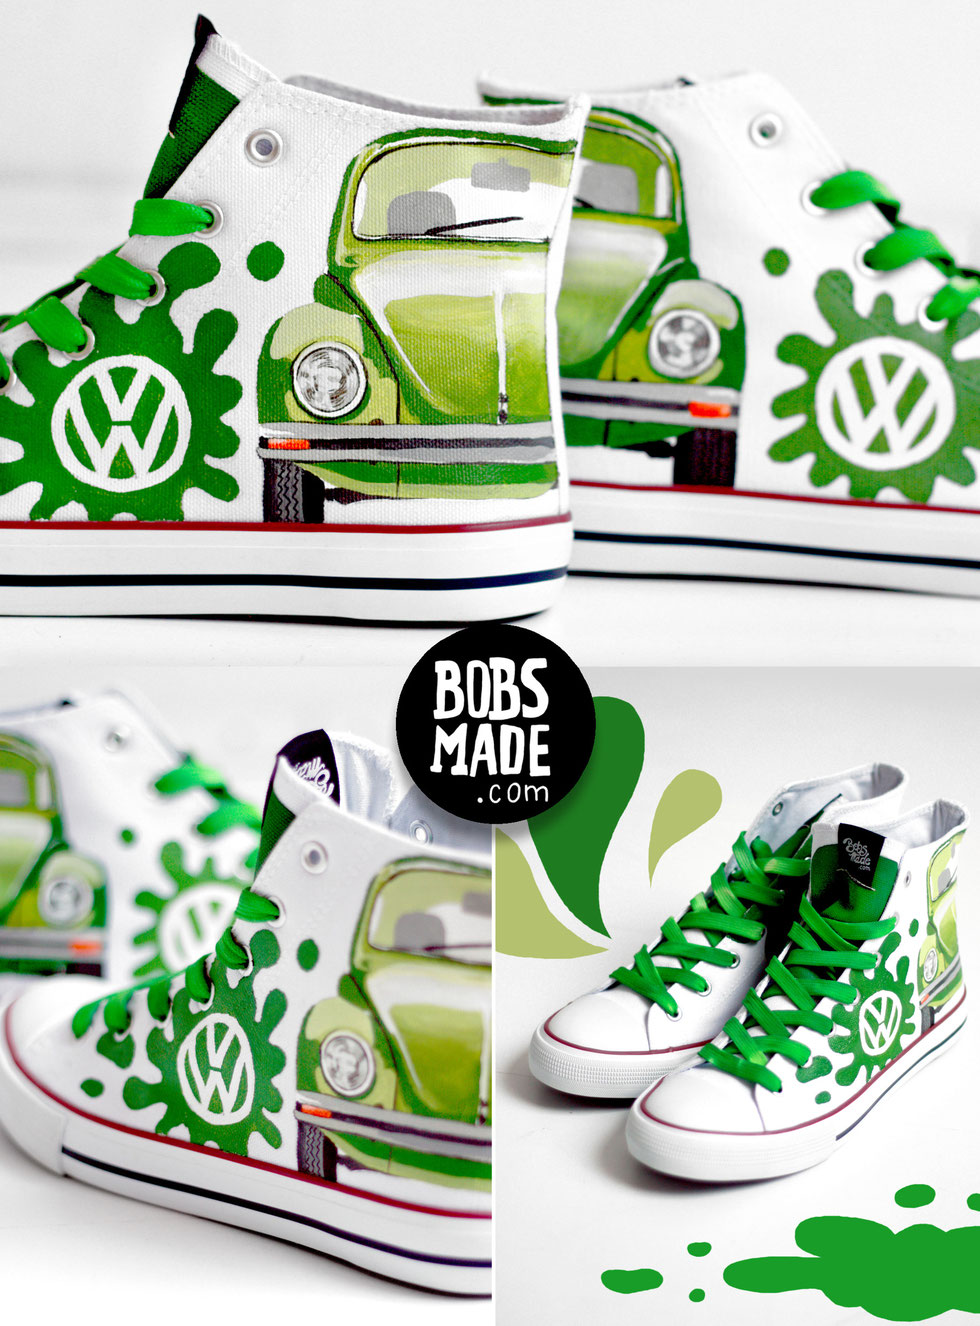 bobsmade vw shoes Käfer beetle